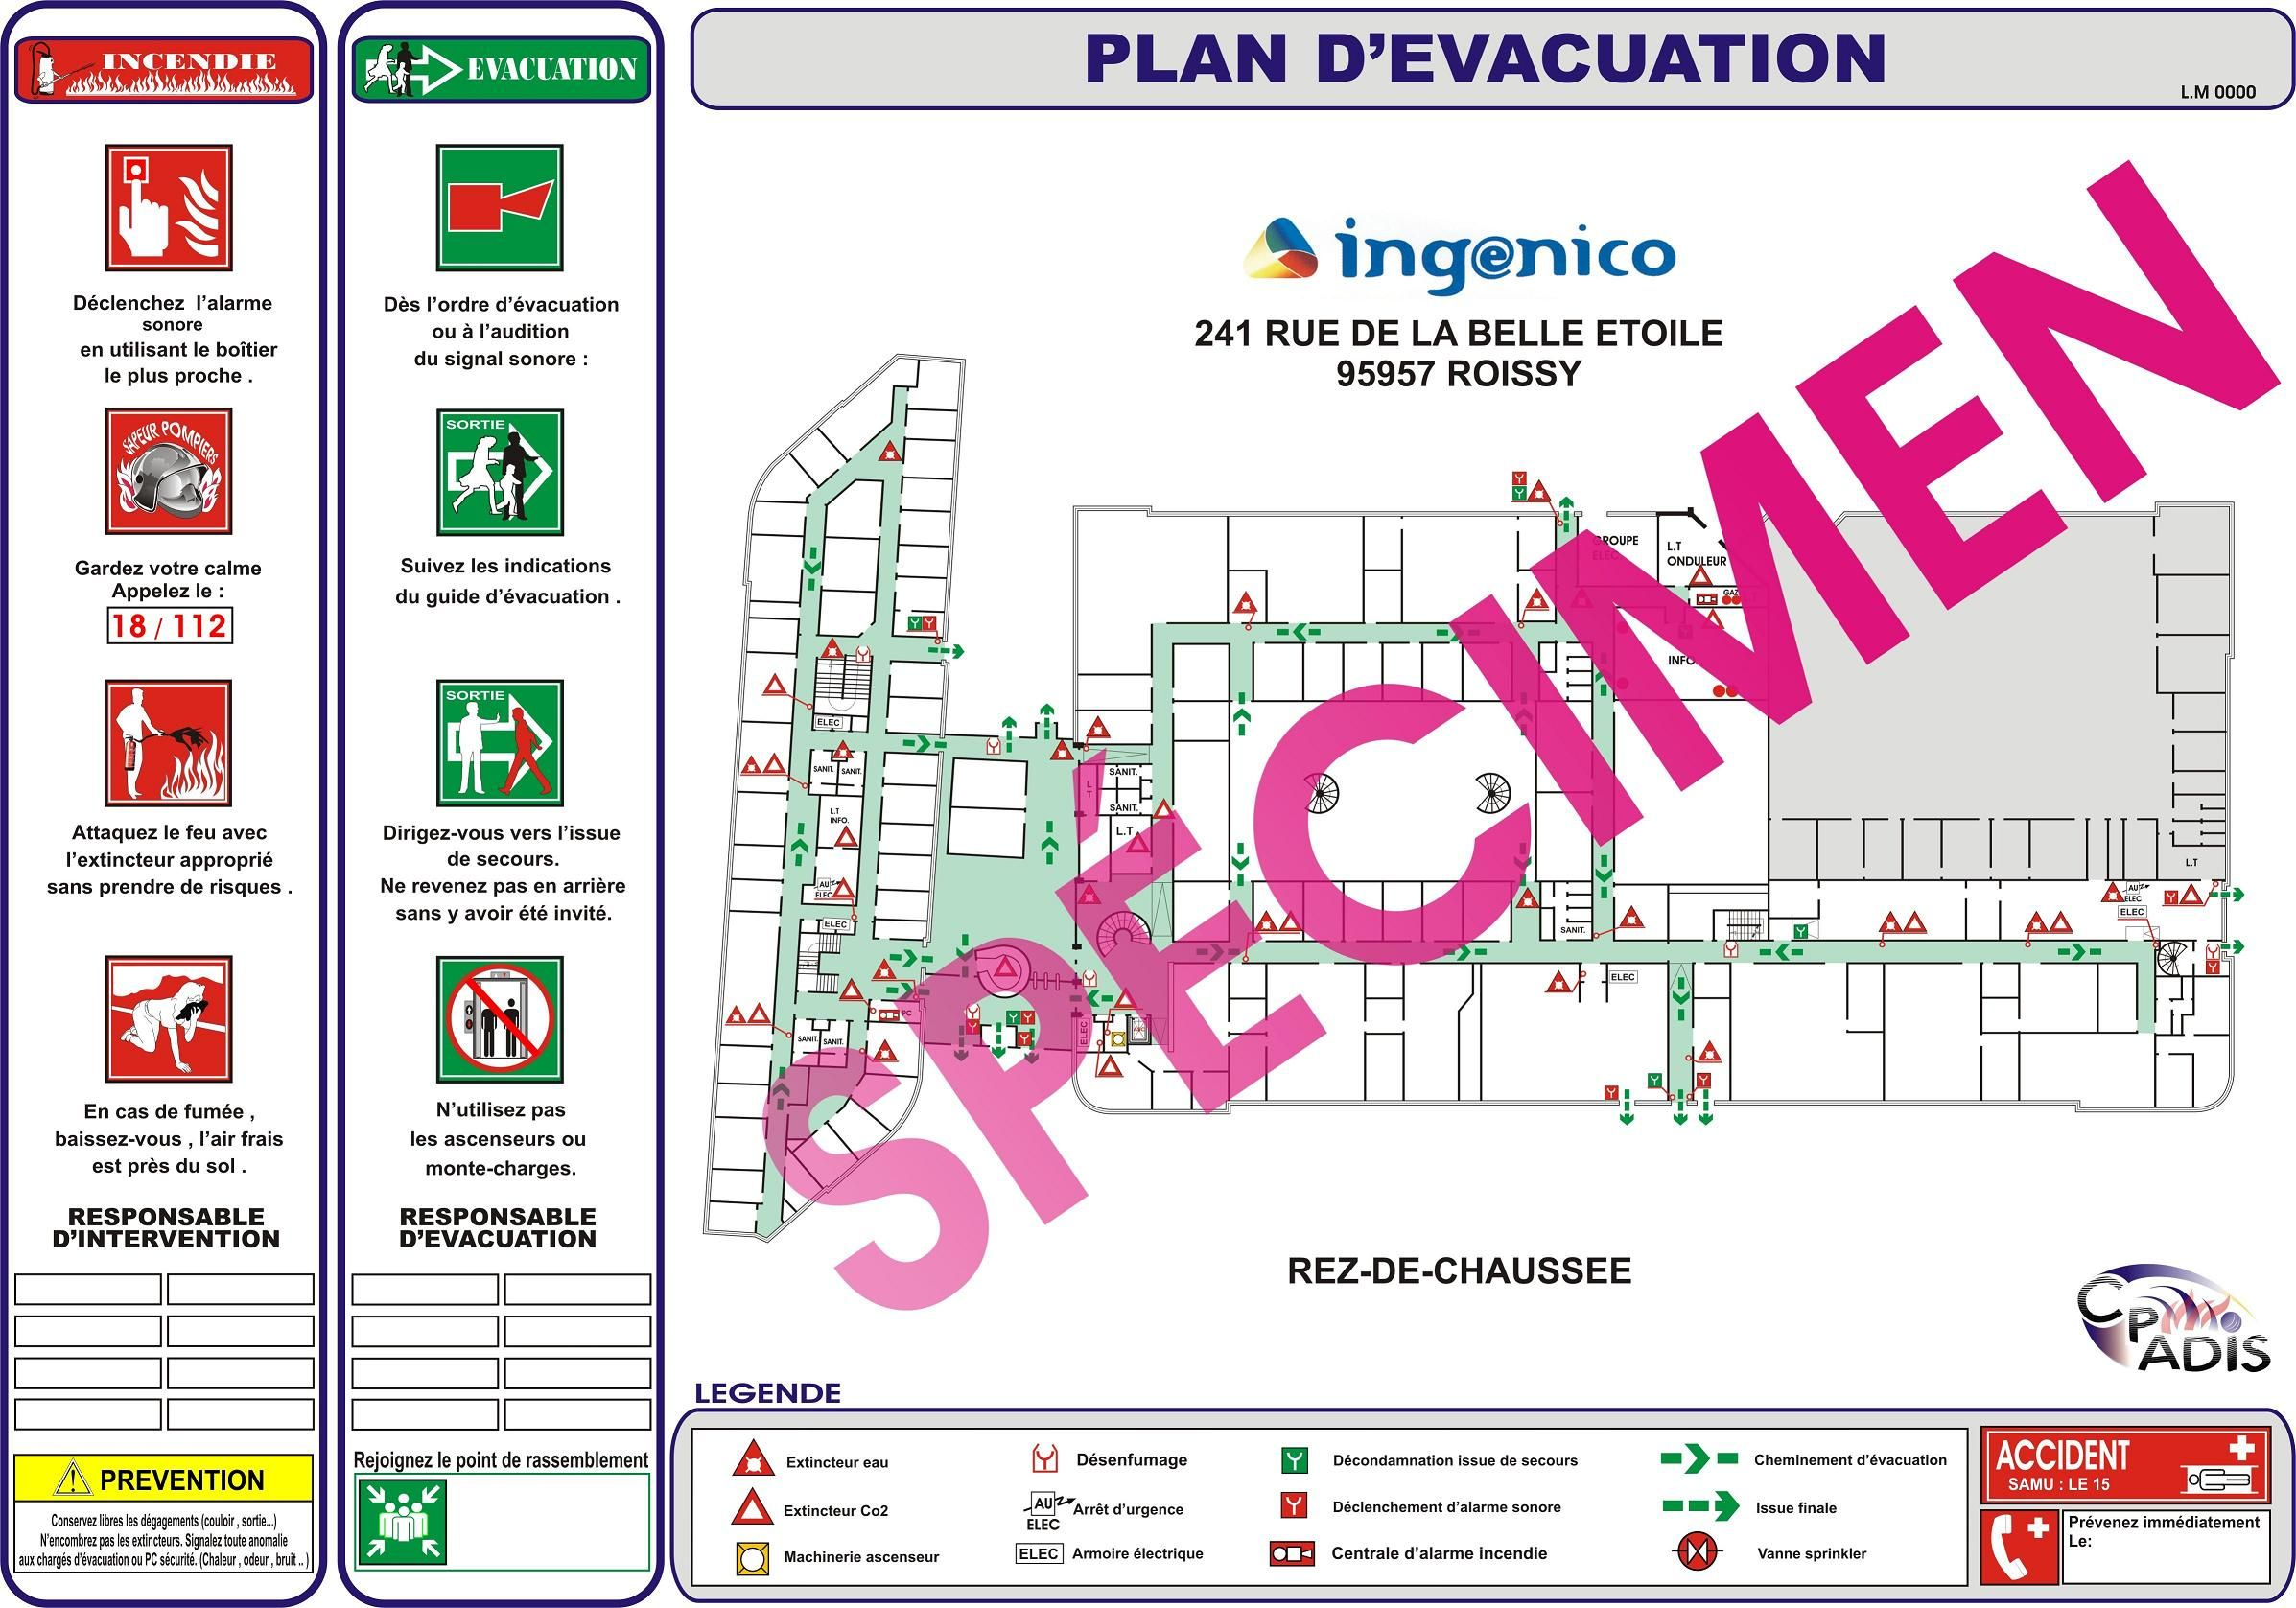 Evacuation Plan for Medical Office http://www.centerblog.net/societe/227338-1-plan-evacuation-erp-